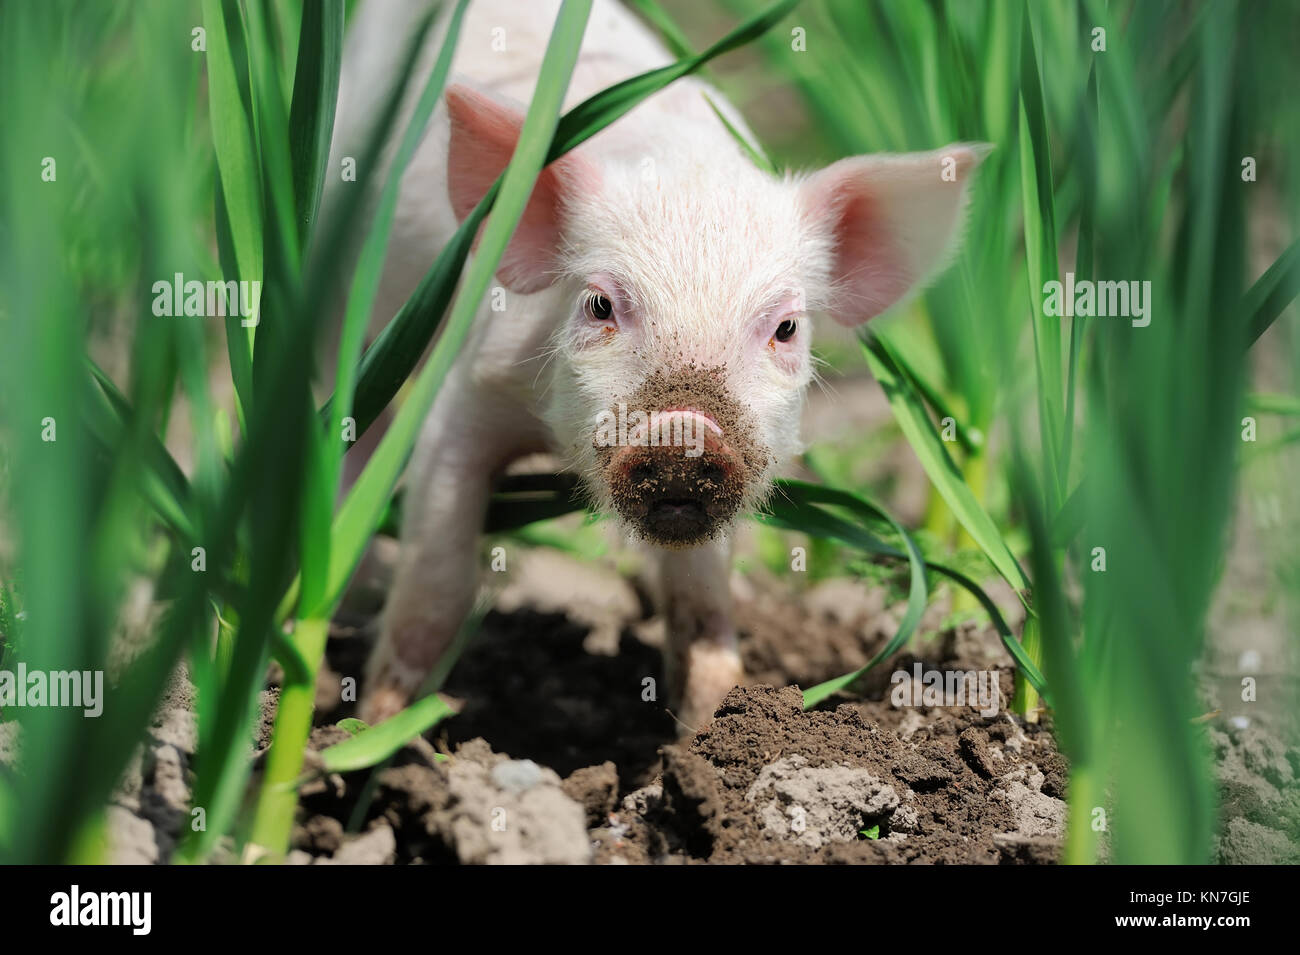 Piglet sur l'herbe verte du printemps à la ferme Photo Stock